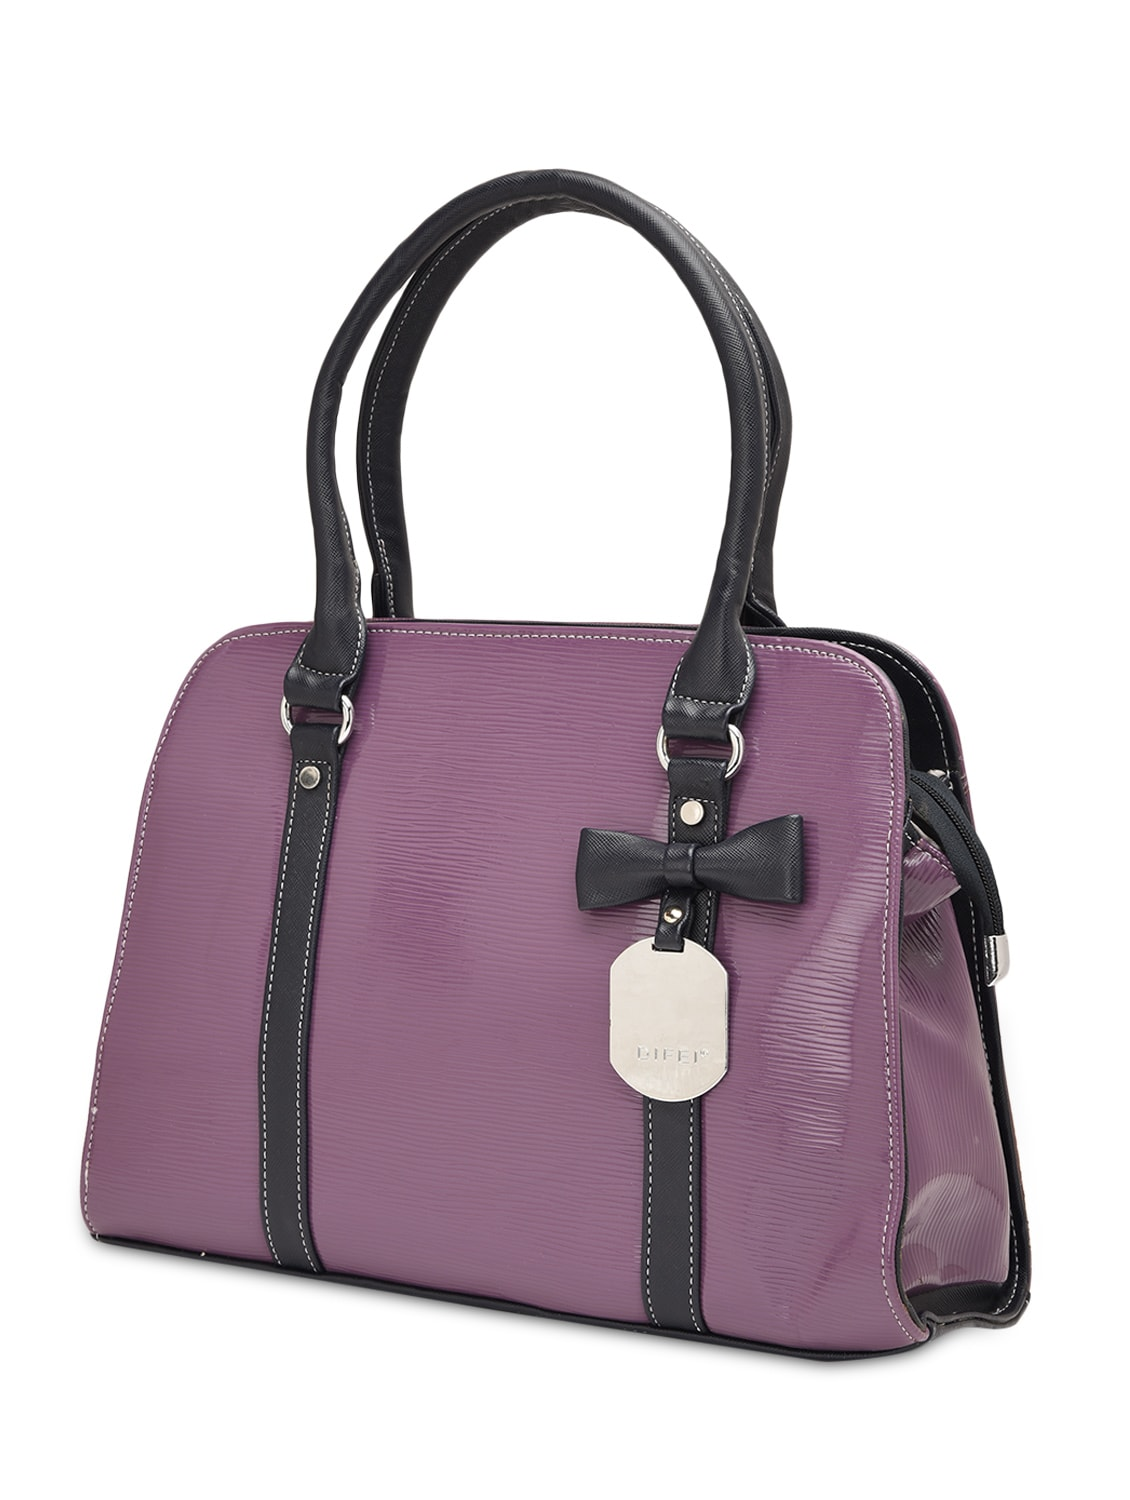 M And S Handbags Handbag Galleries